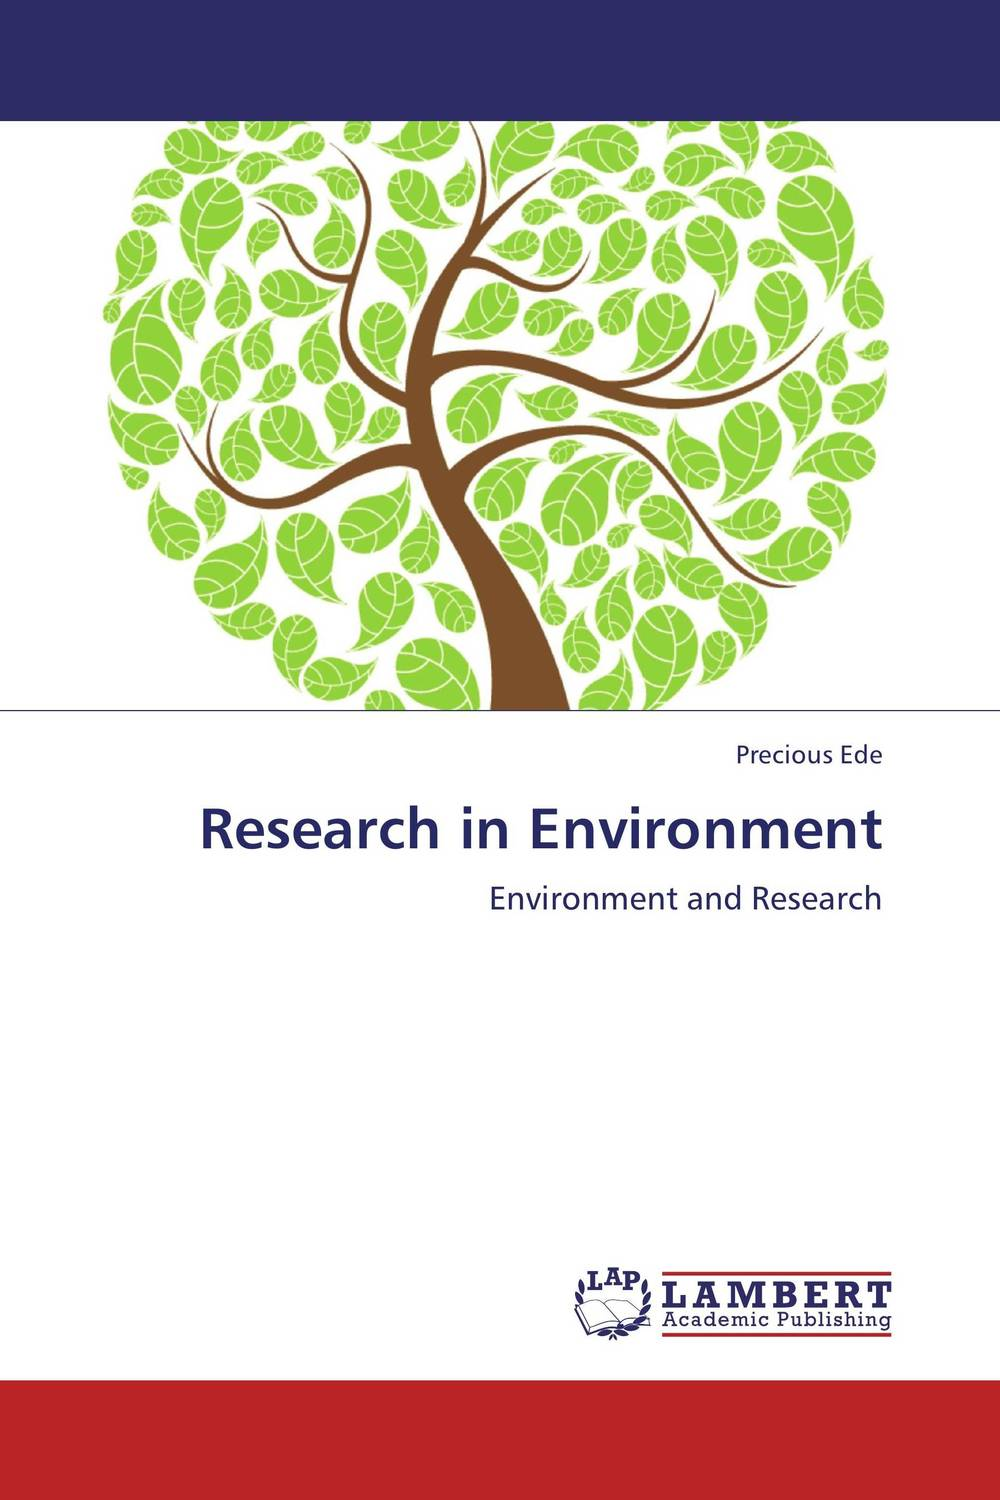 Research in Environment how to do a research project